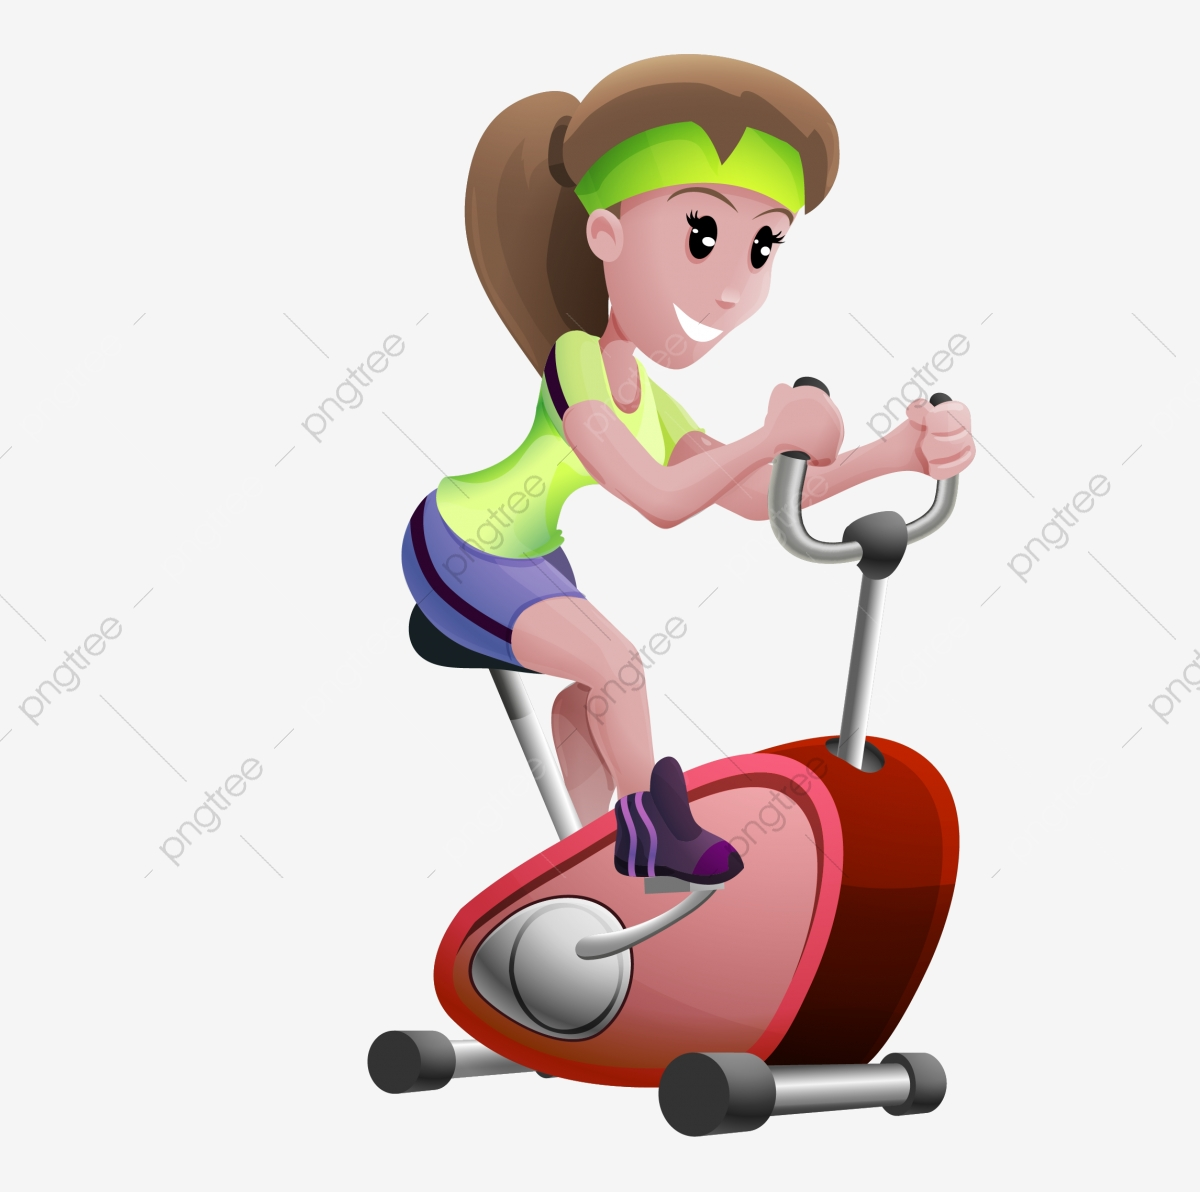 Fitness equipment clipart. Exercise bike spinning lose